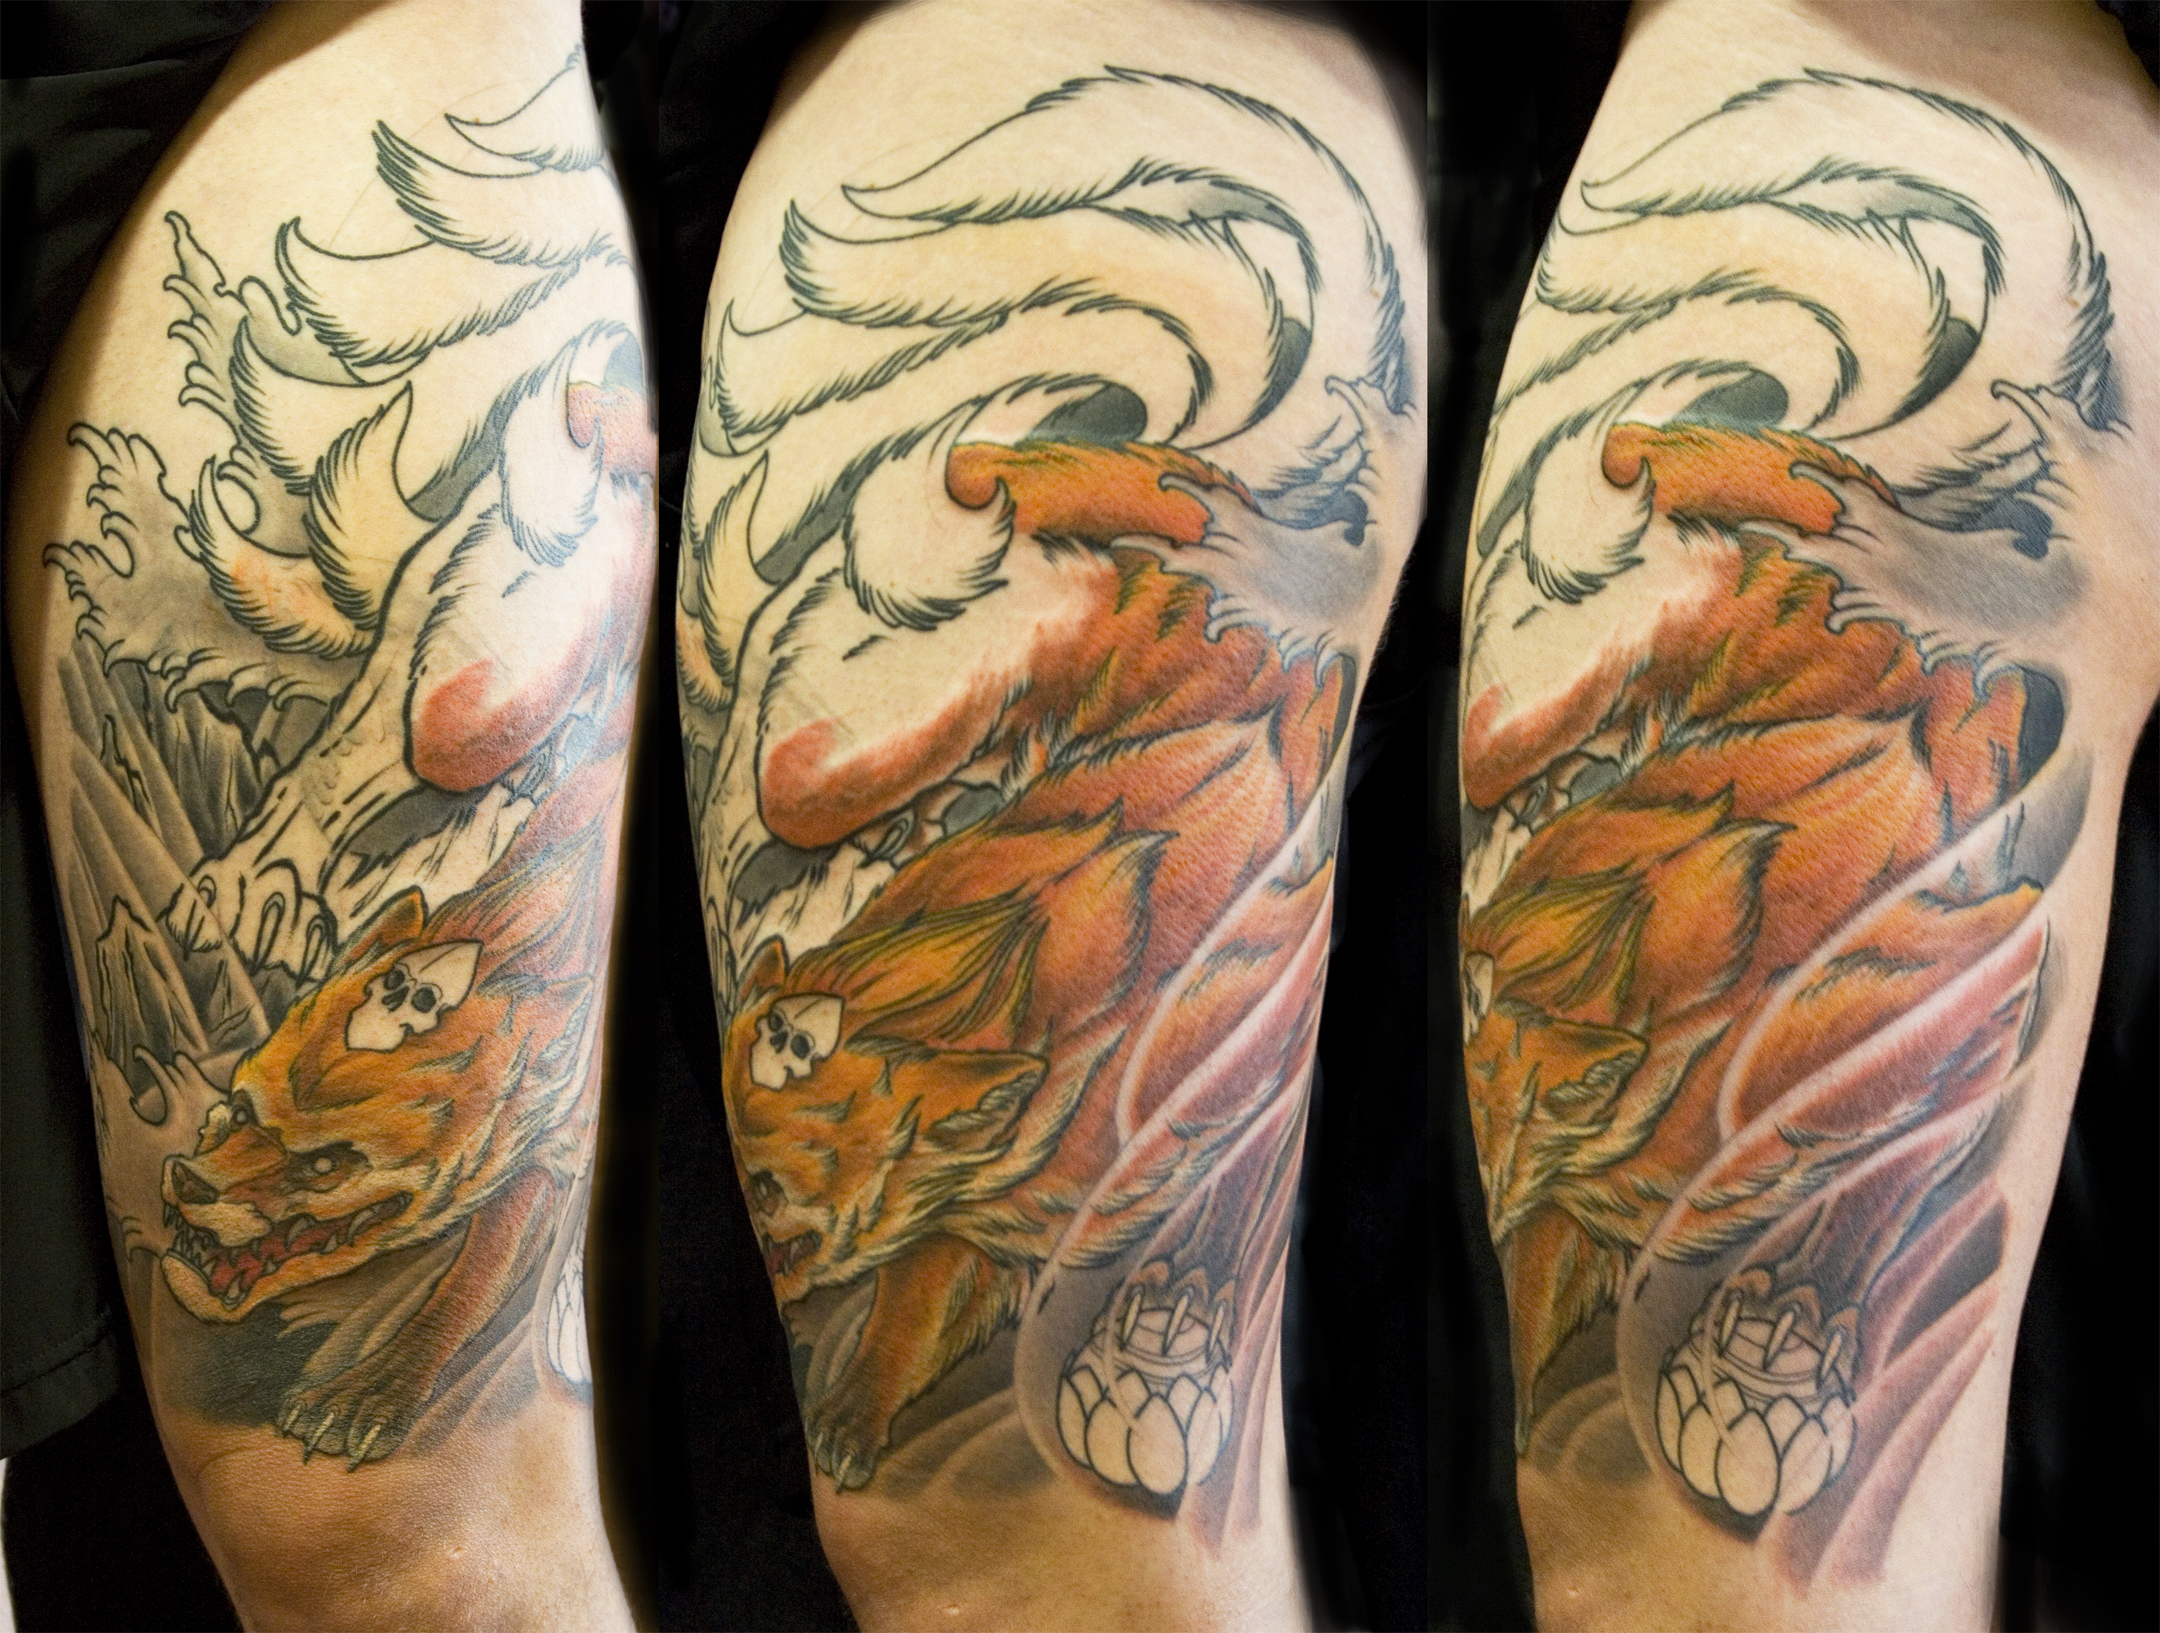 Traditional Kitsune Tattoo: Japanese Kitsune Tattoo By Chris Walkin Of